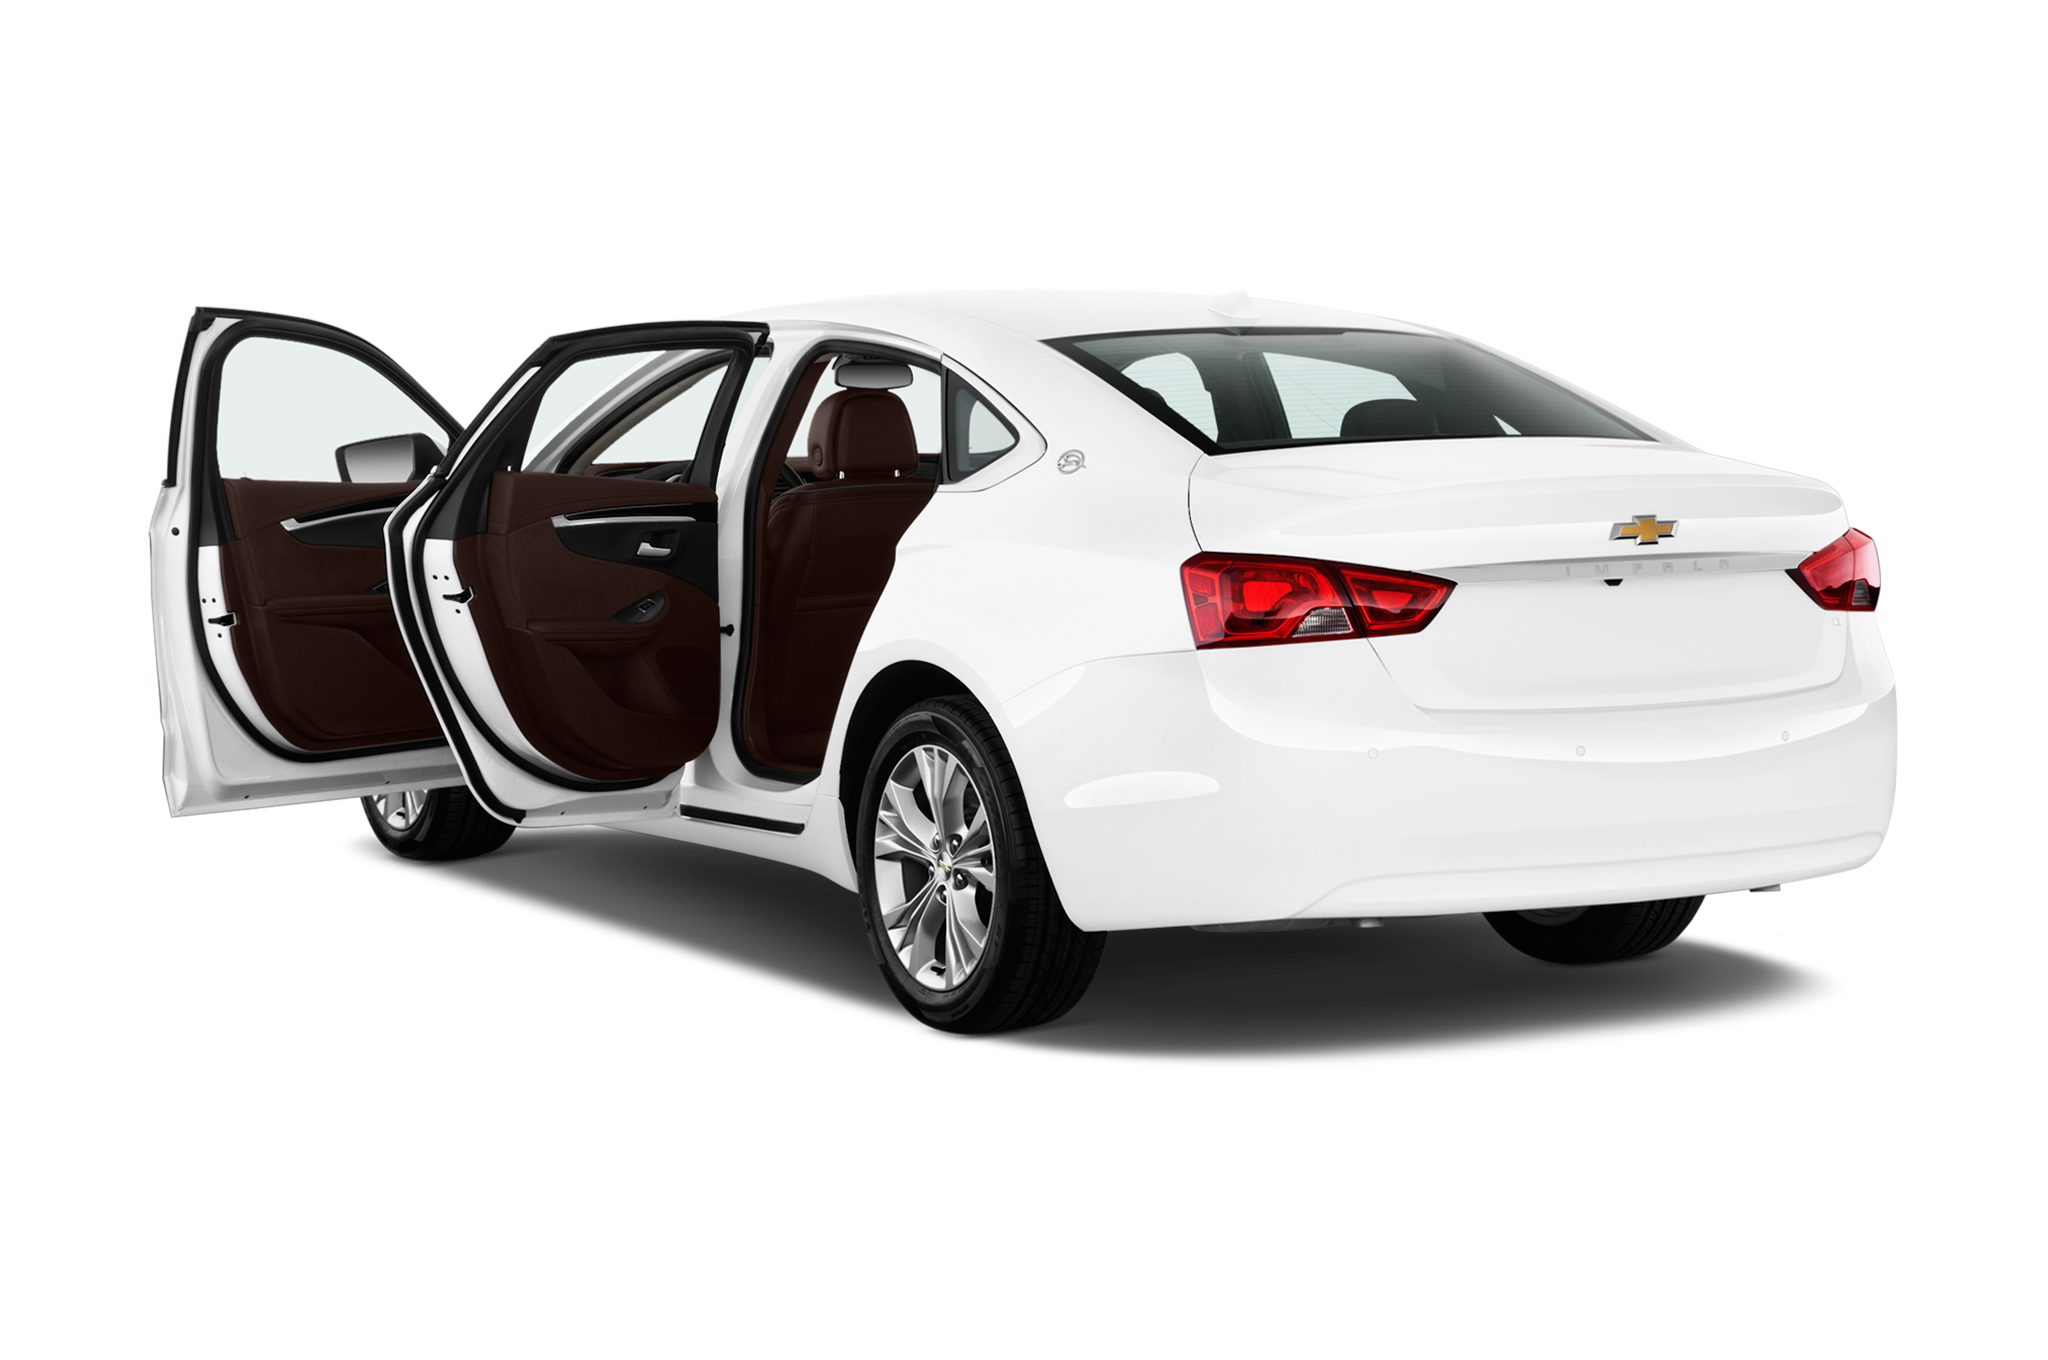 Chevrolet Releases New Impala Midnight Edition Appearance Package